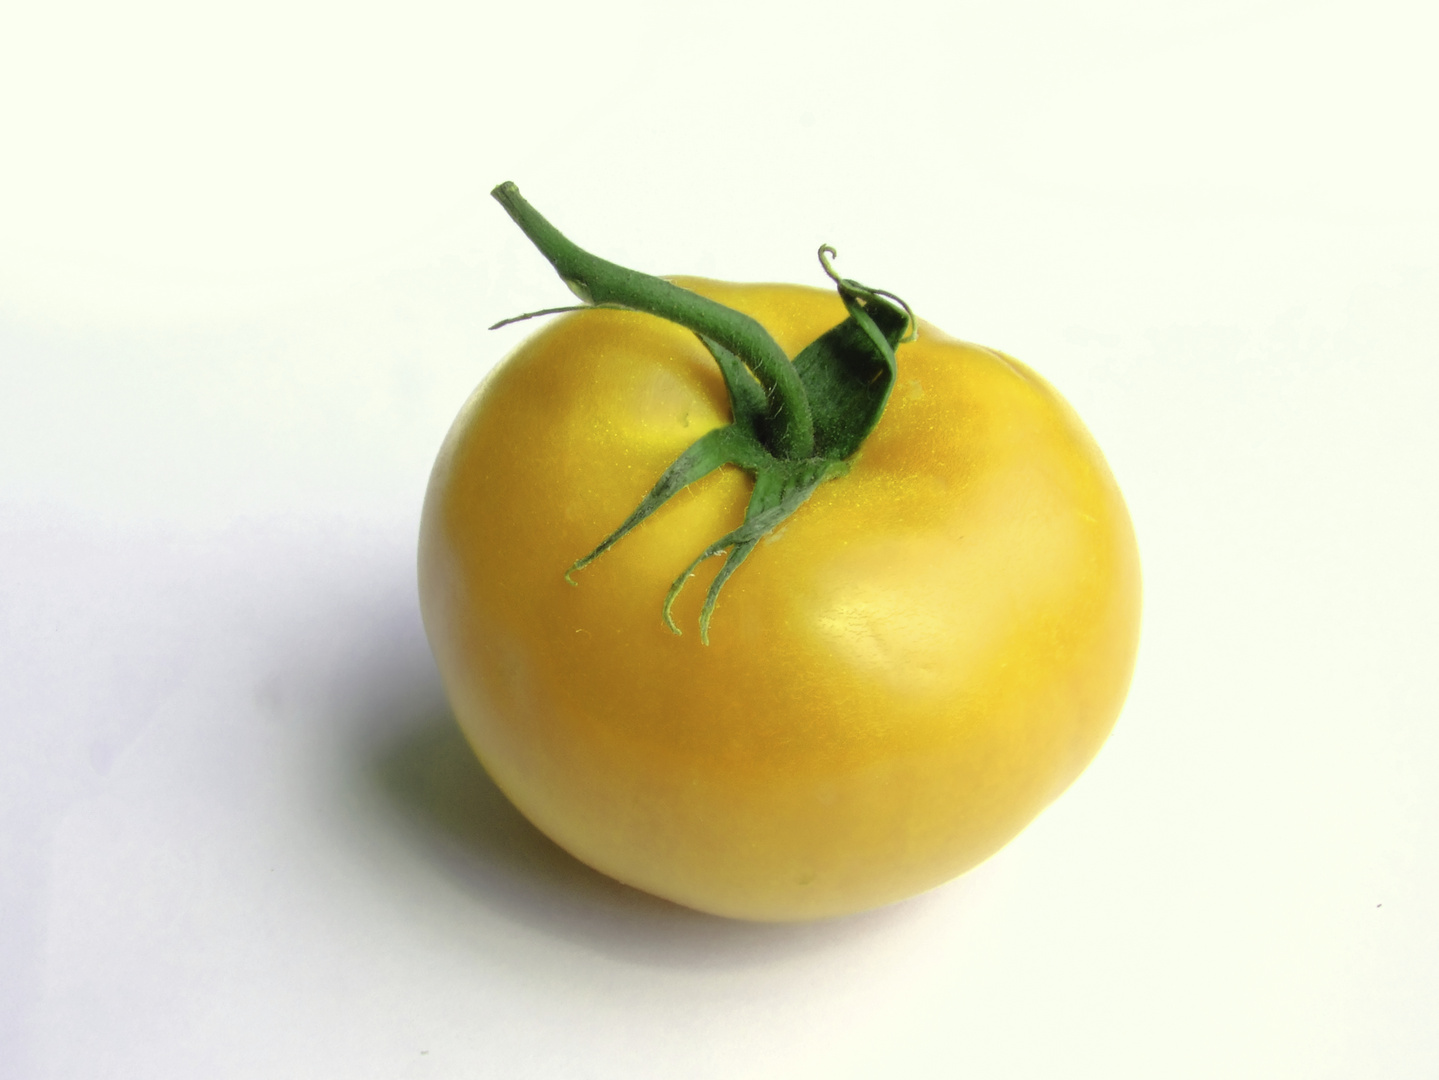 Tomate in gelb